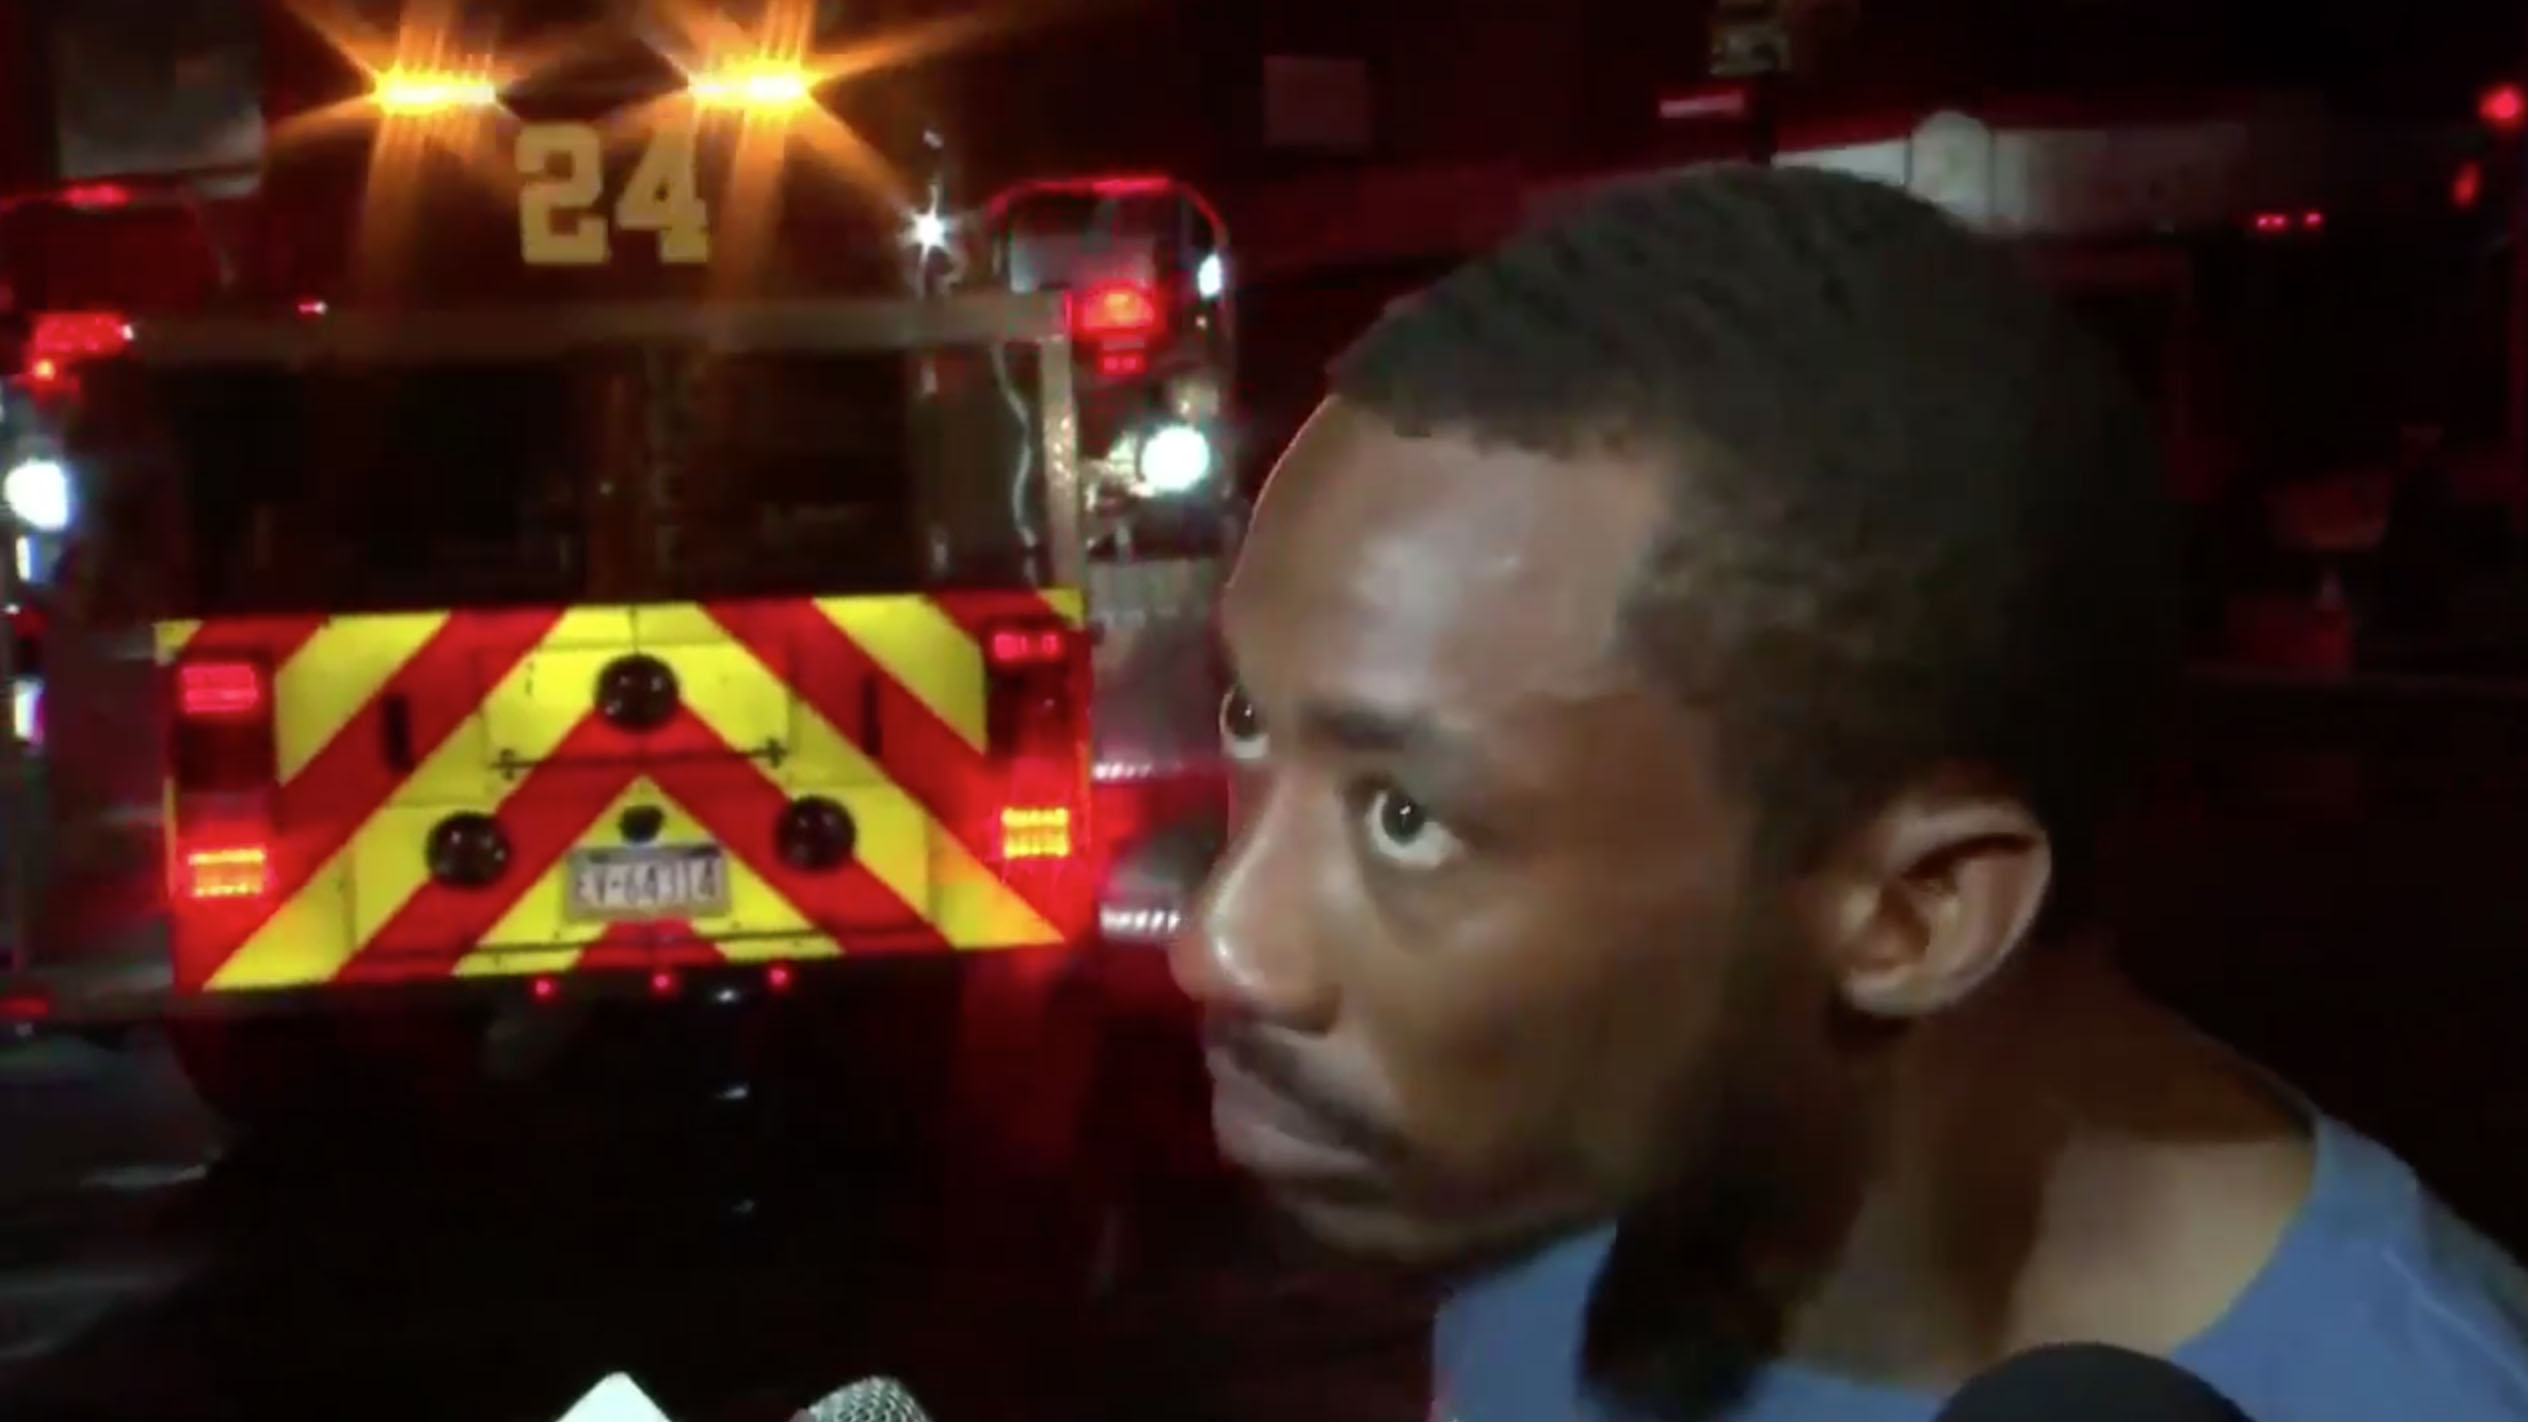 Eagles fan rips Nelson Agholor after saving people in fire (video)